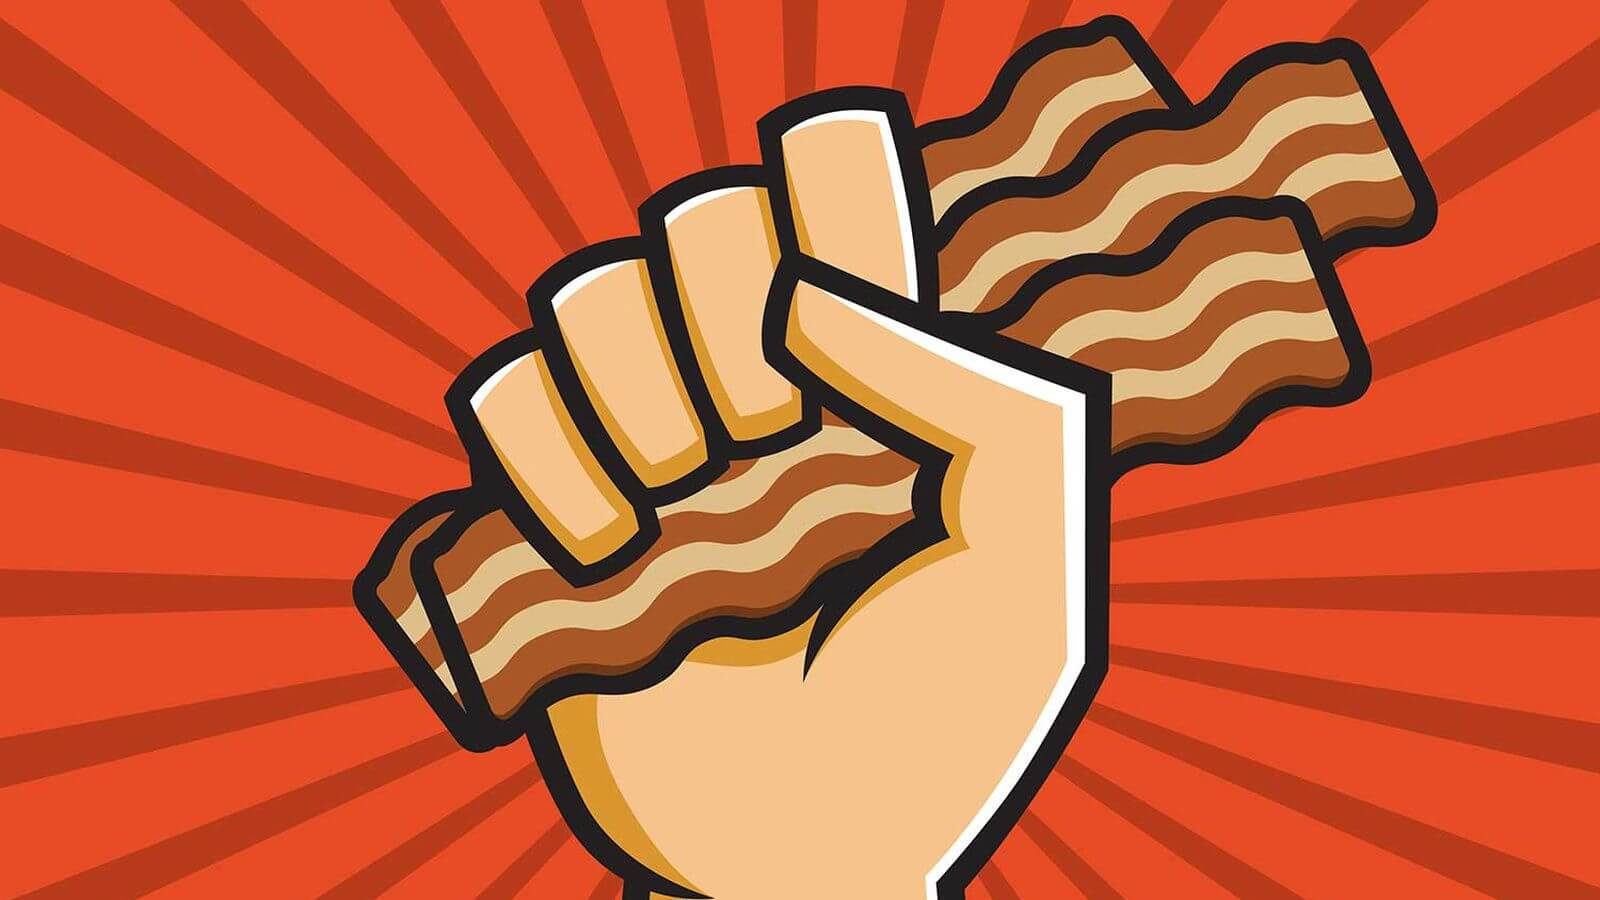 bacon-emoji.0.0